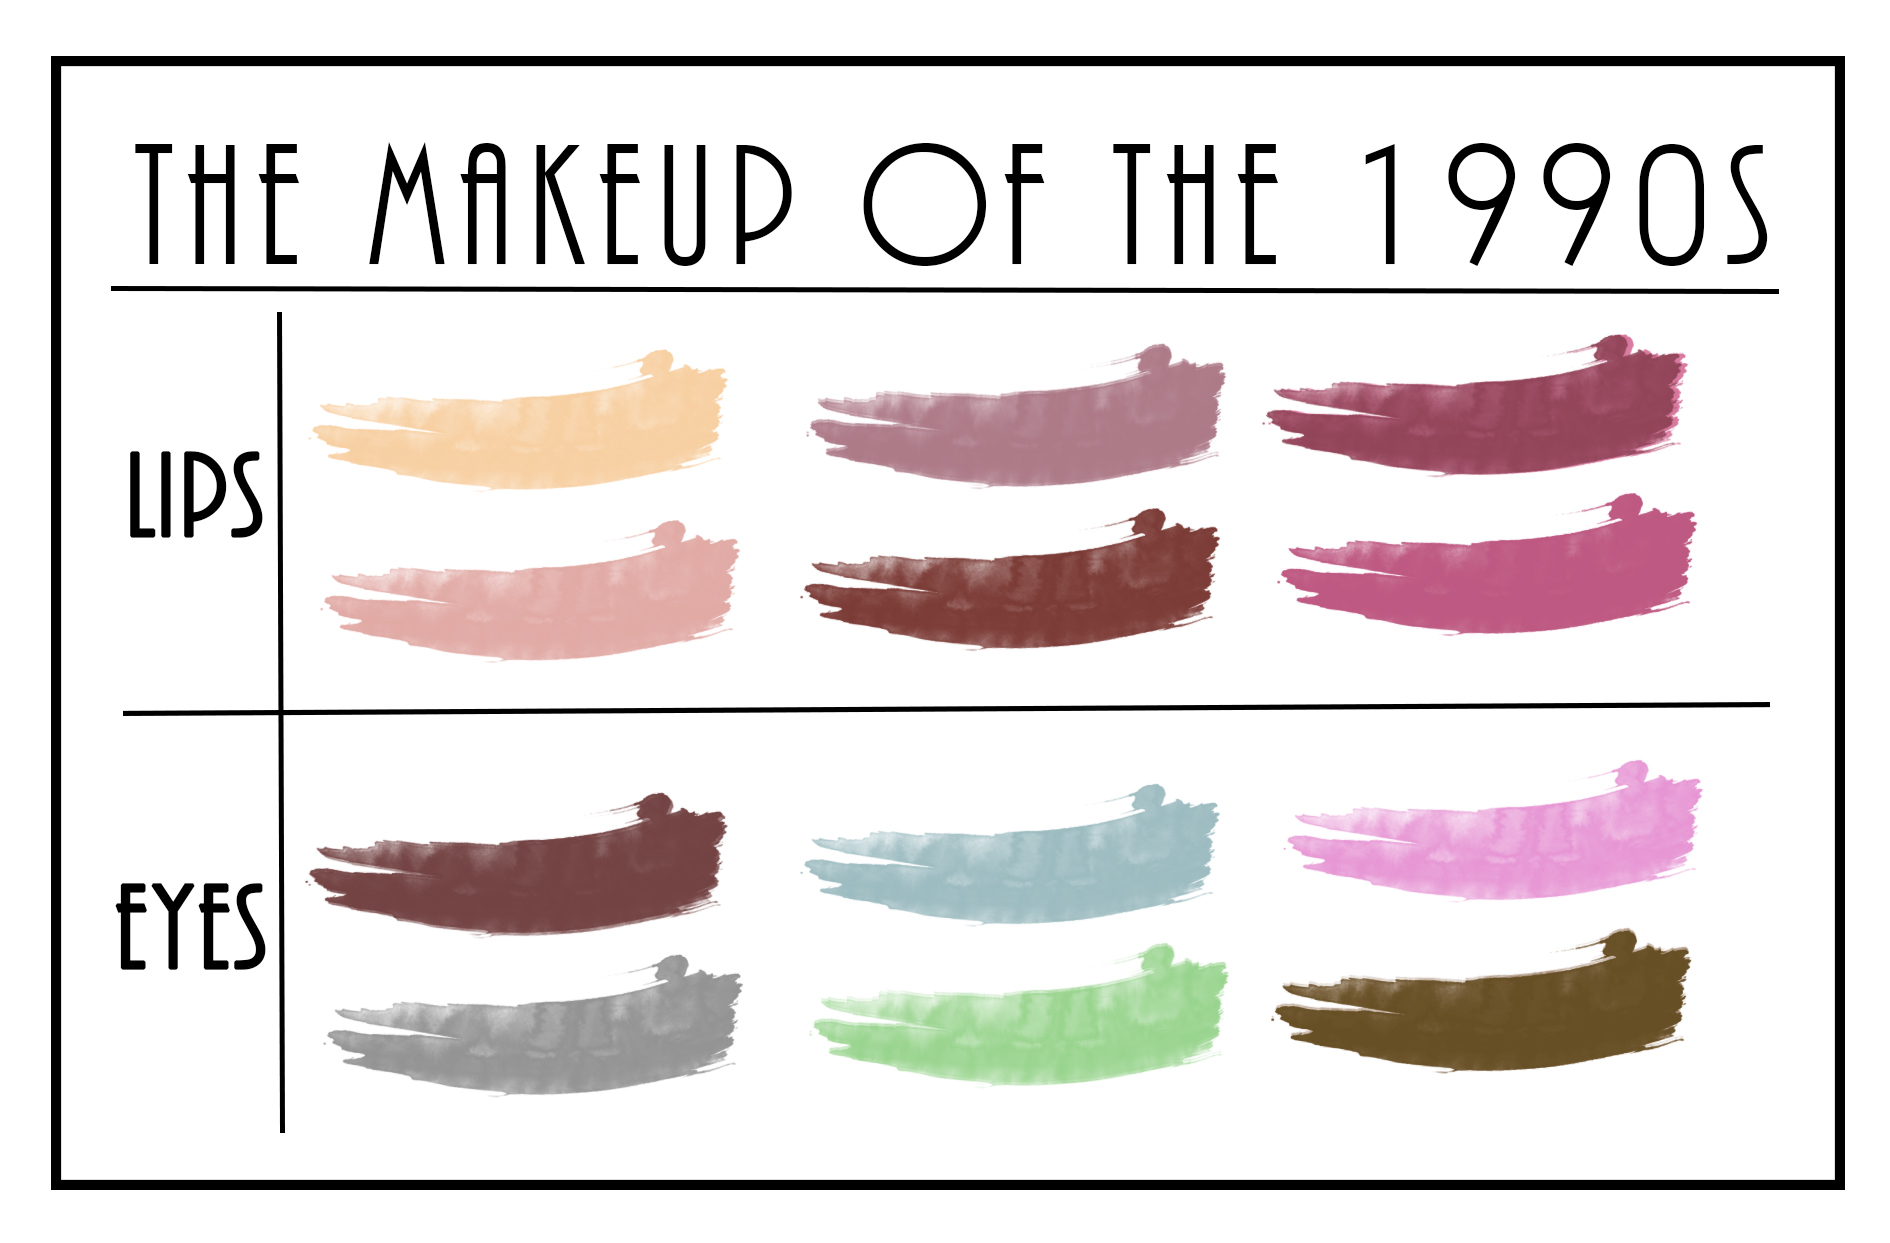 The Makeup Of The 1990s